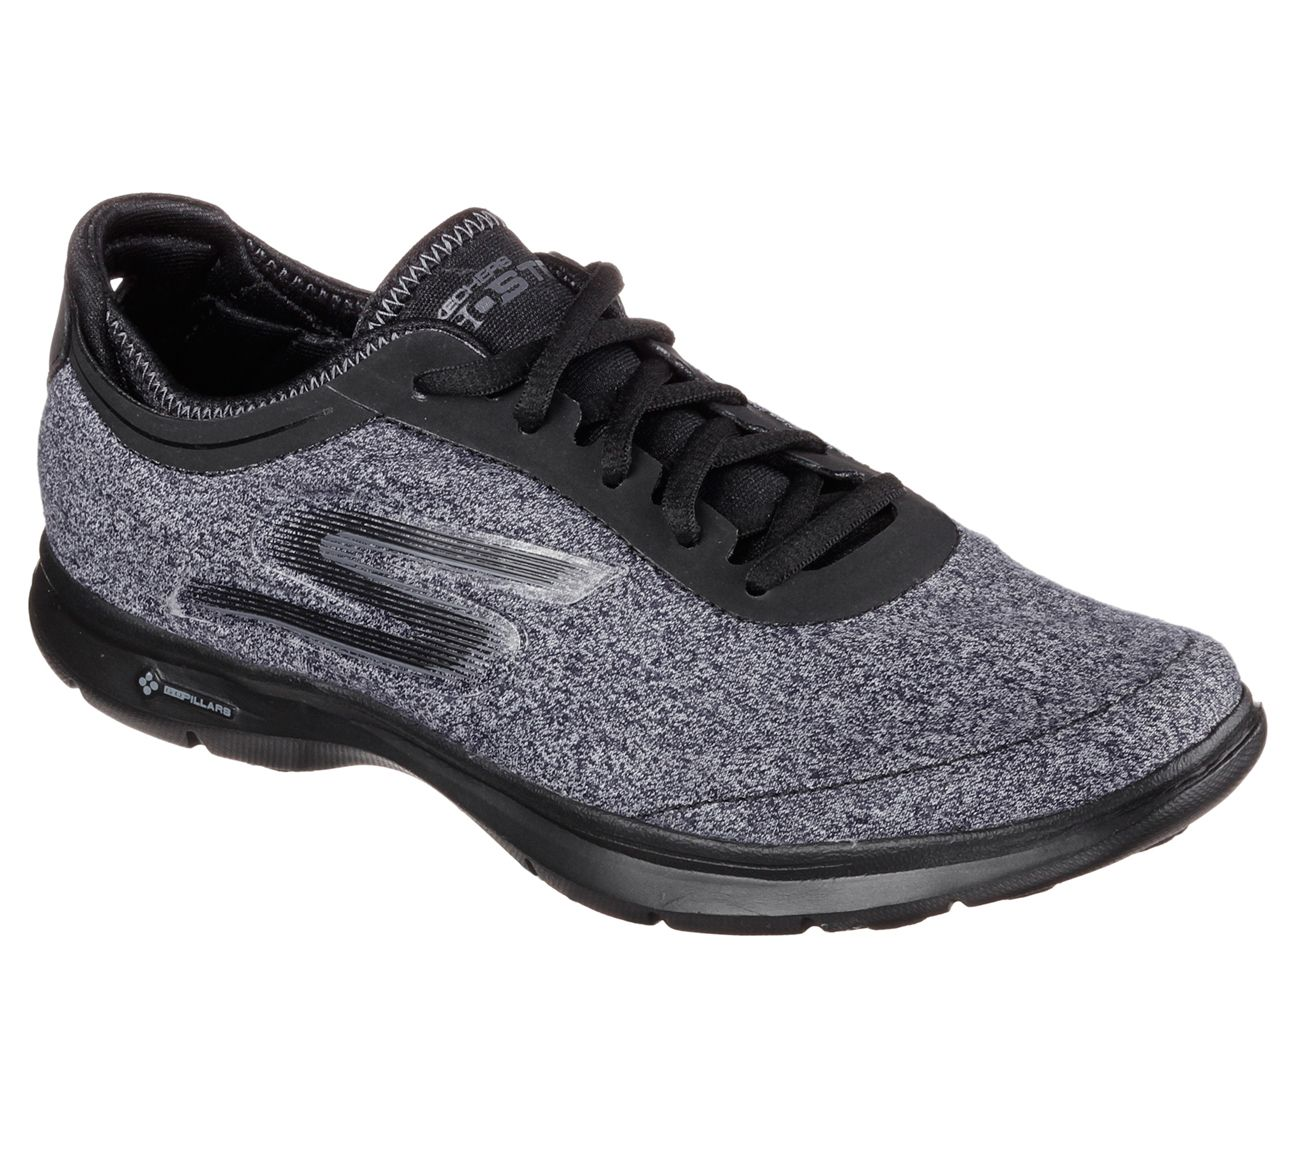 Inspired by our Skechers GOwalk 3 platform, the Skechers GO